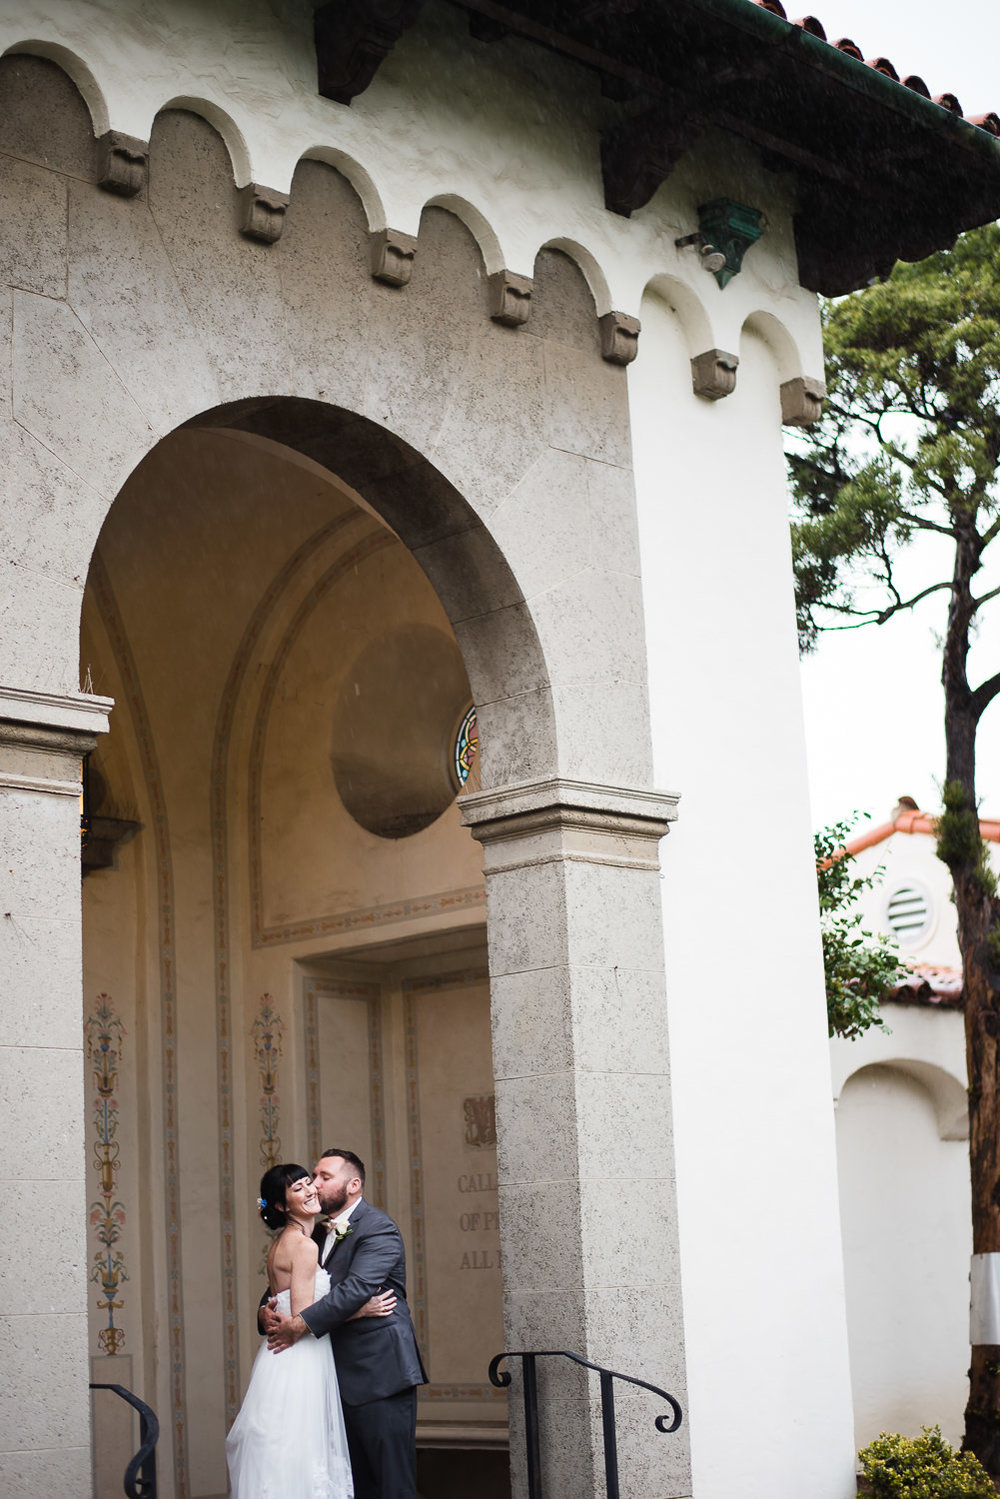 los-angeles-engagement-wedding-photography-18.jpg